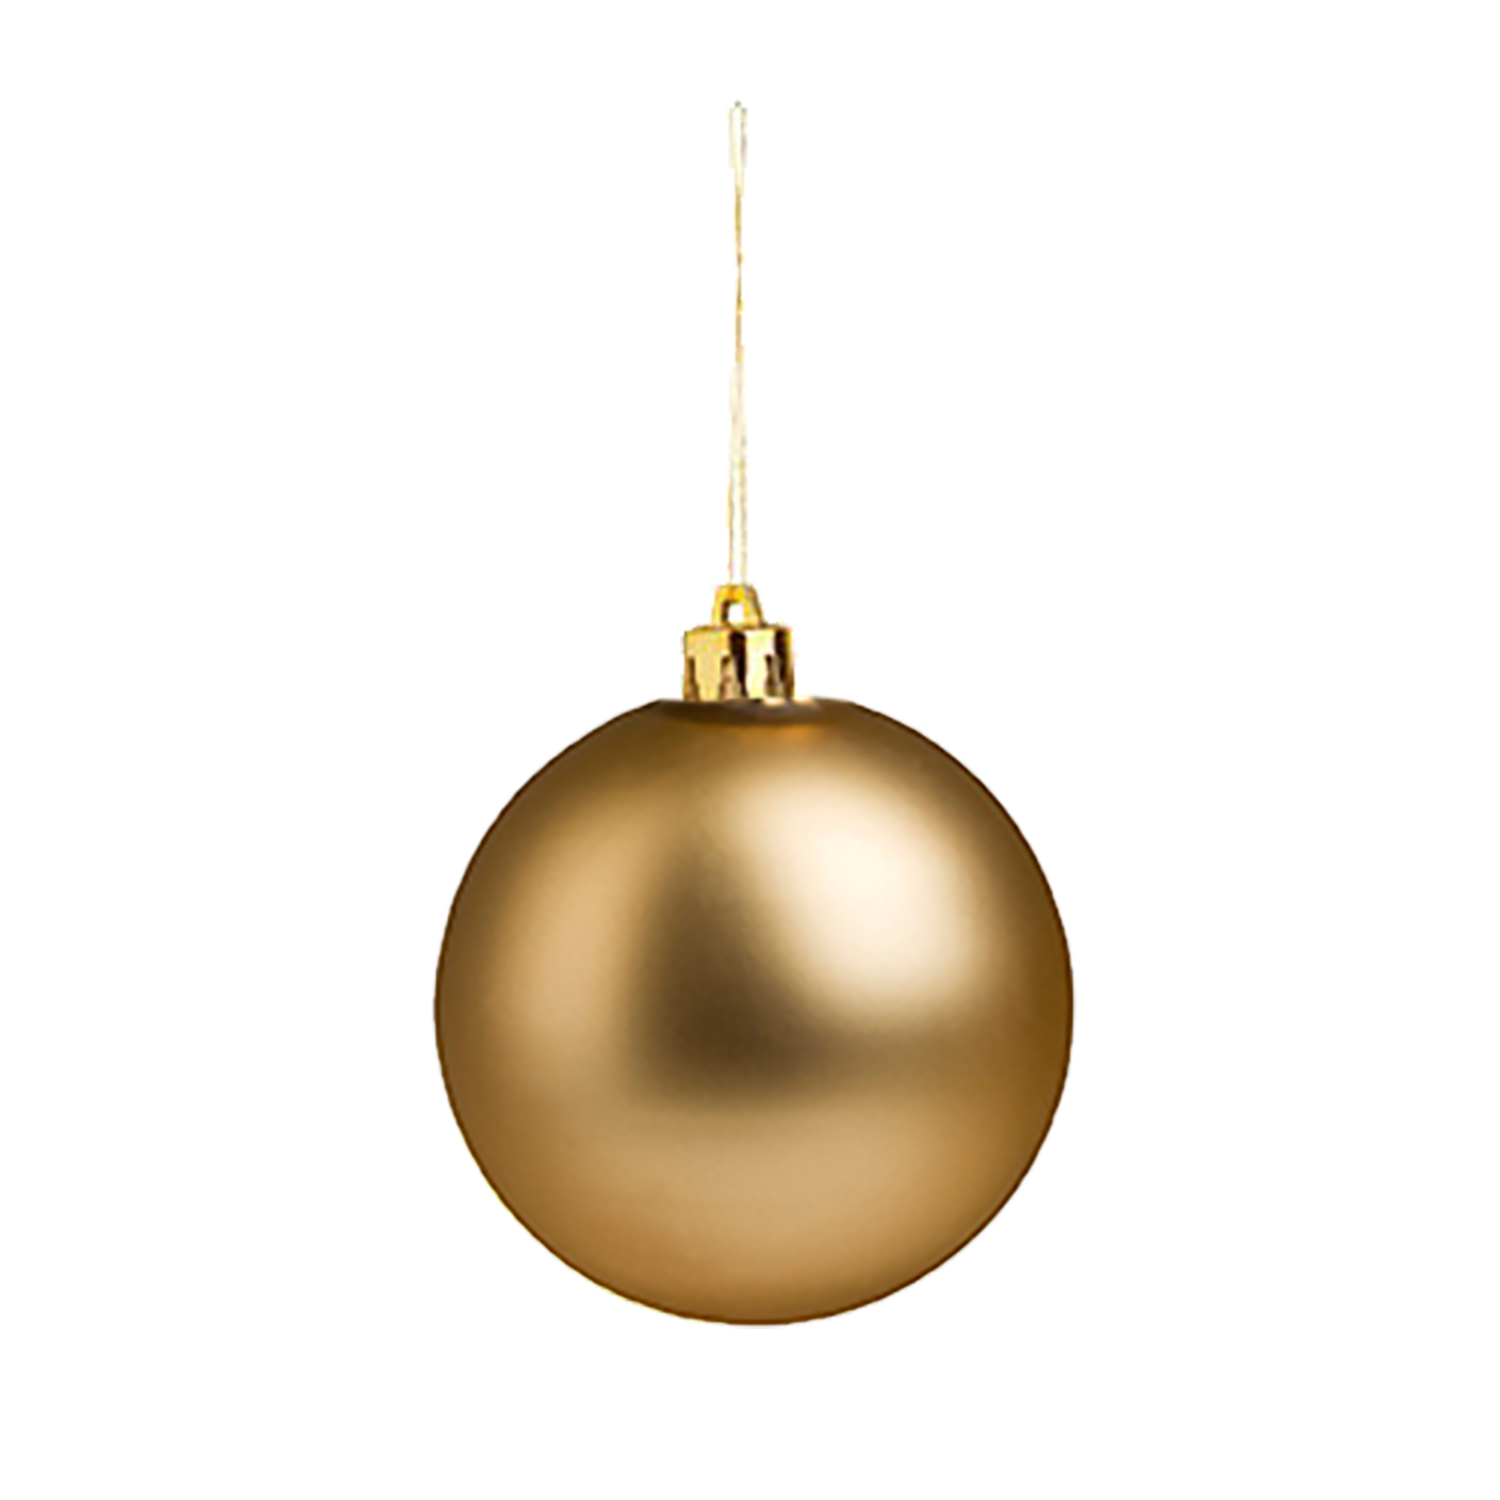 Christmas Ball (Christmas ornament 8cm) - hmi99099-14 (Gold)